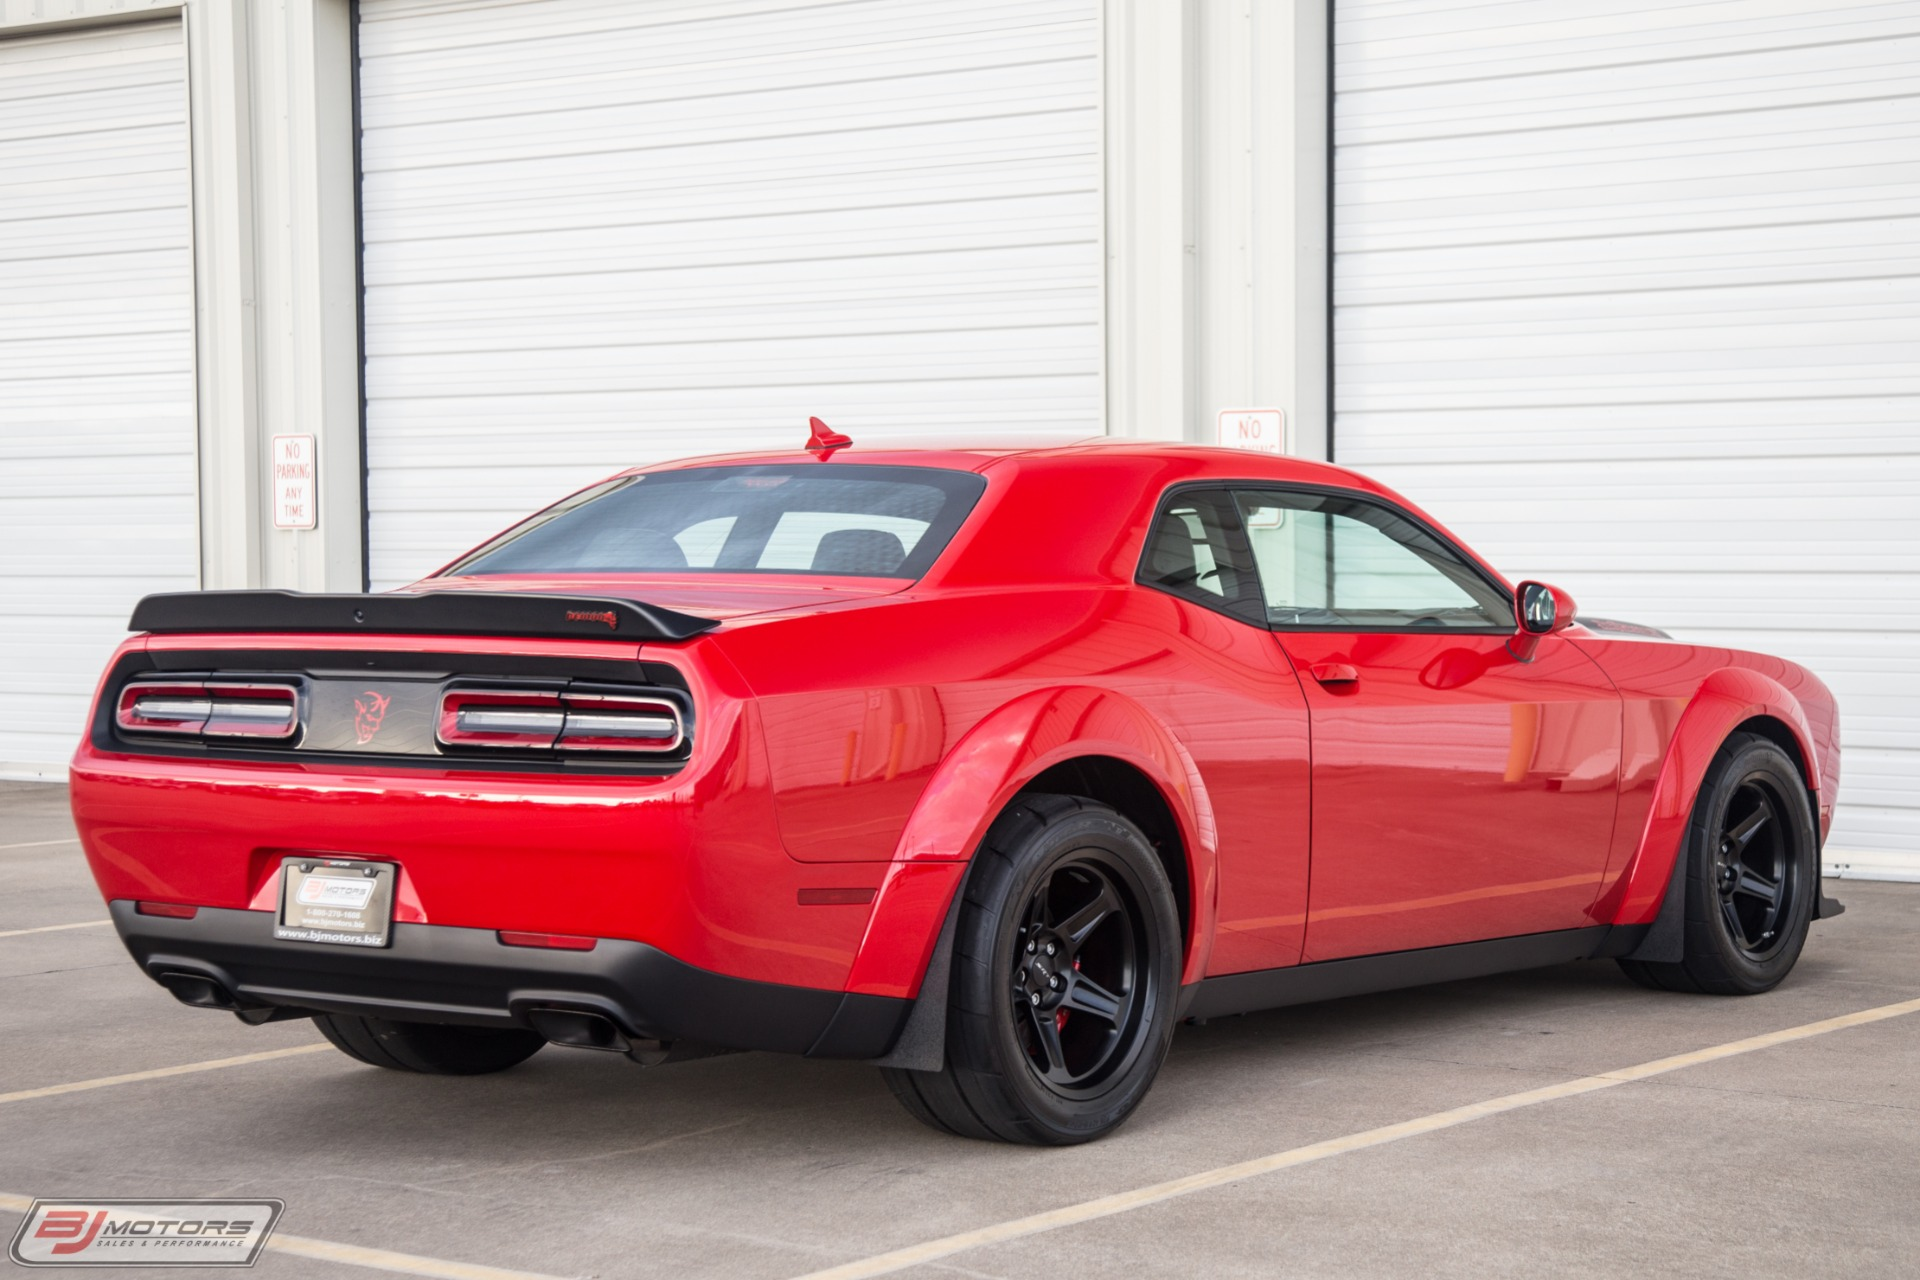 Used-2018-Dodge-Challenger-SRT-Demon